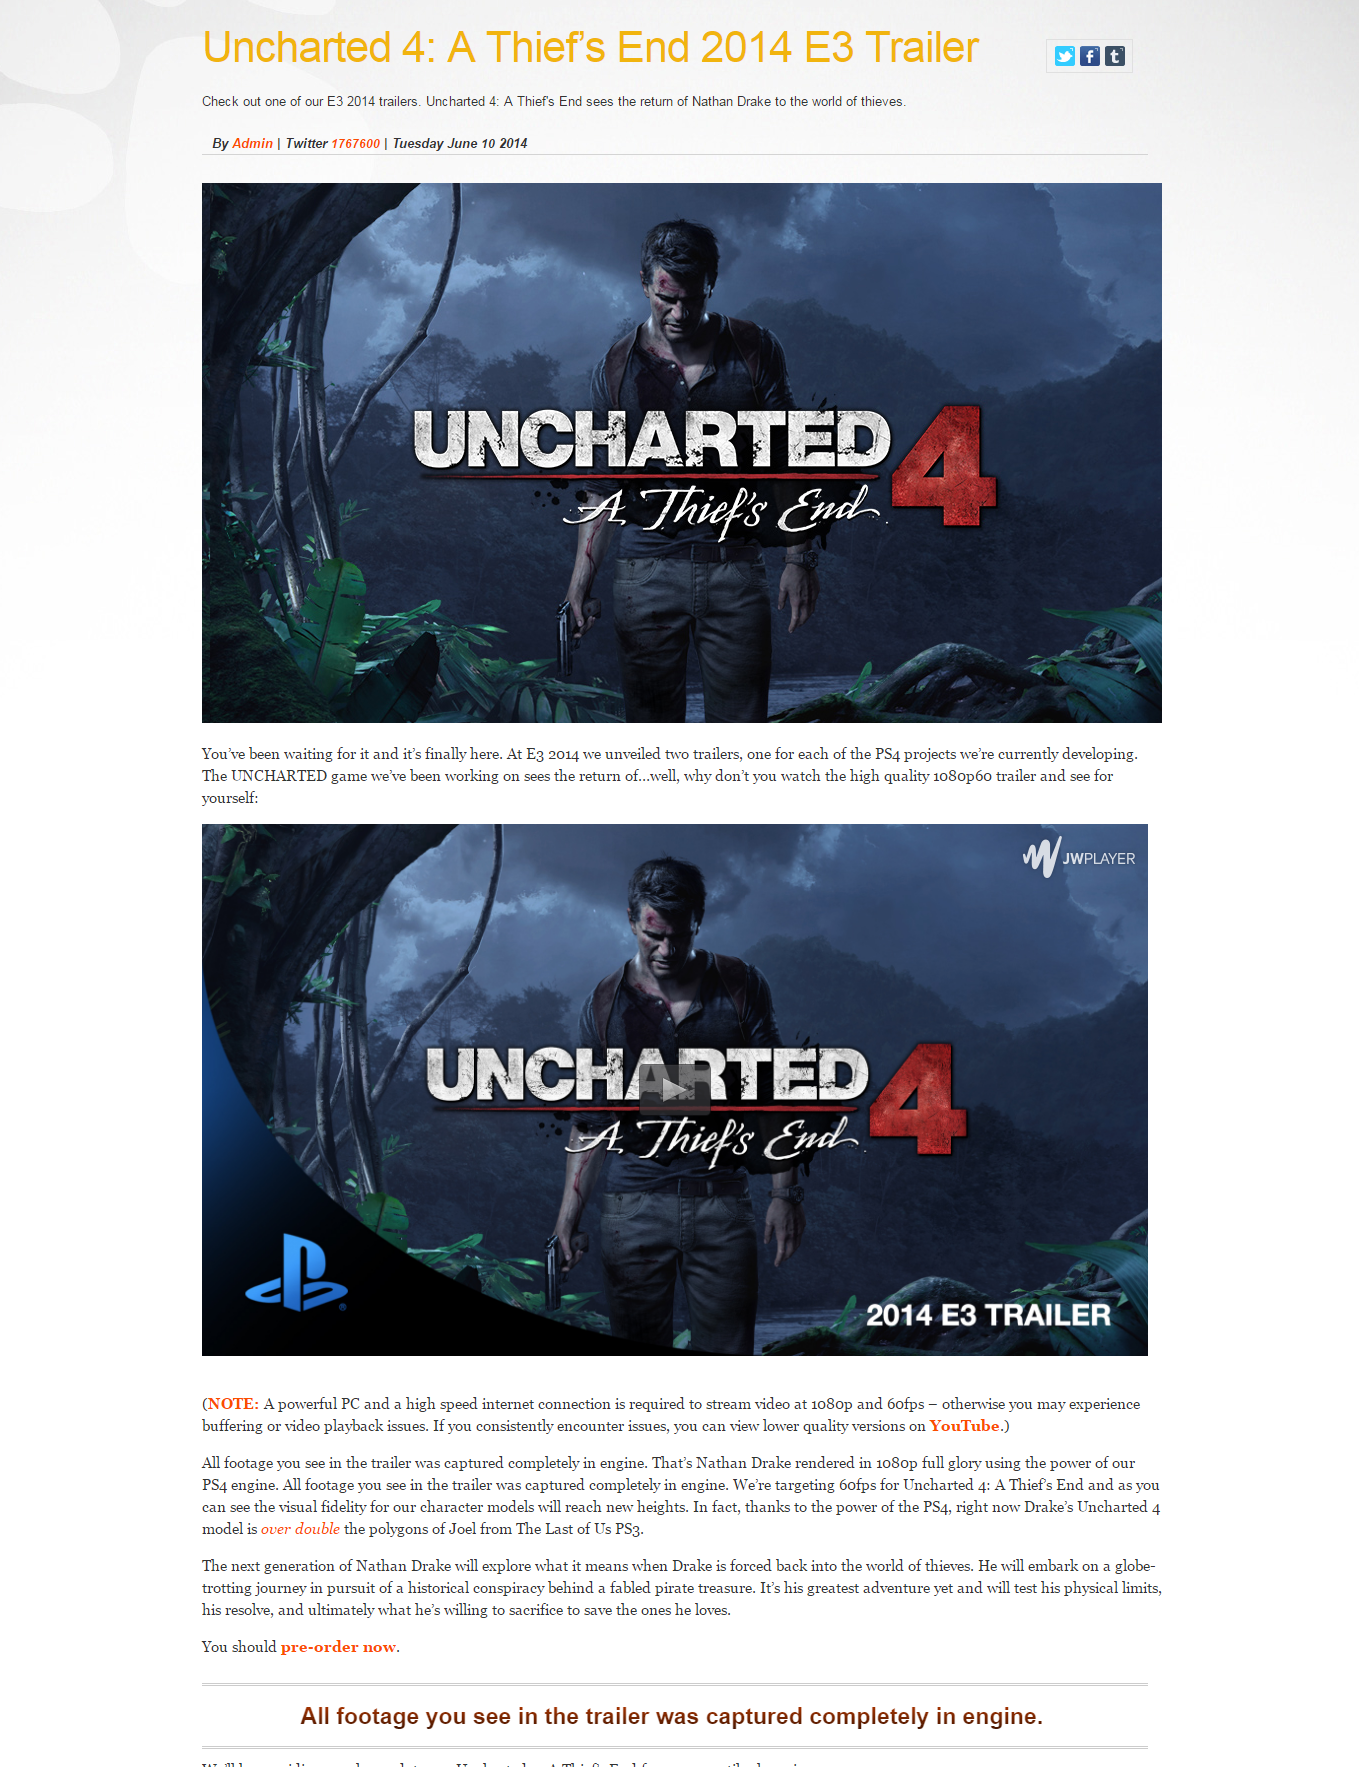 Uncharted 4 Trailer runs in-engine, in-game, in realtime on